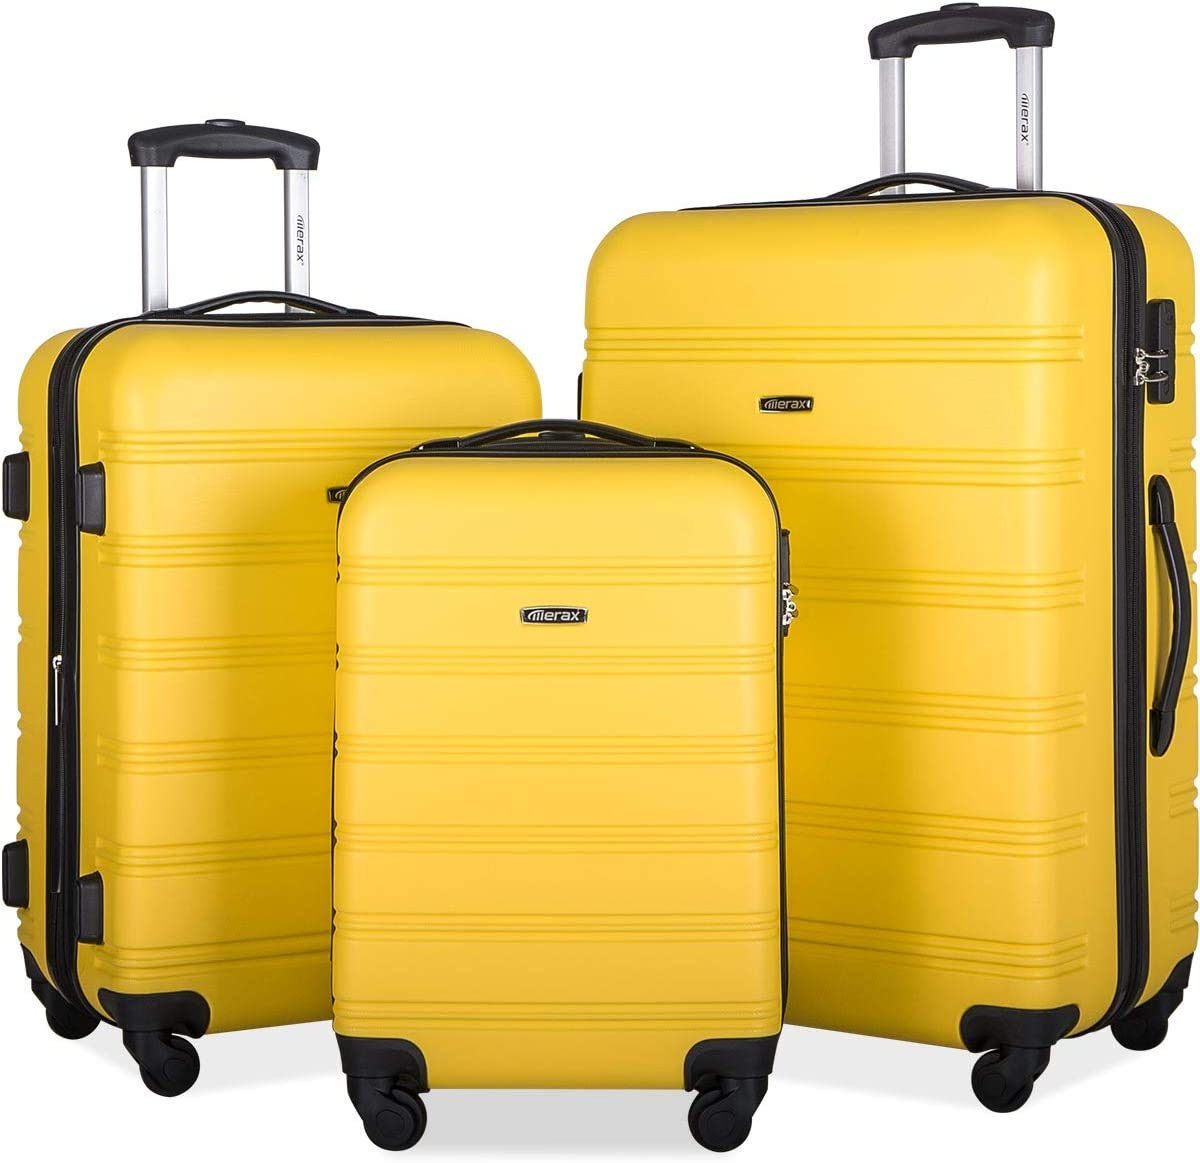 Merax 3 Pcs Luggage Set Expandable Hardside Lightweight Spinner Suitcase with TSA Lock Upgraded Version yellow2019